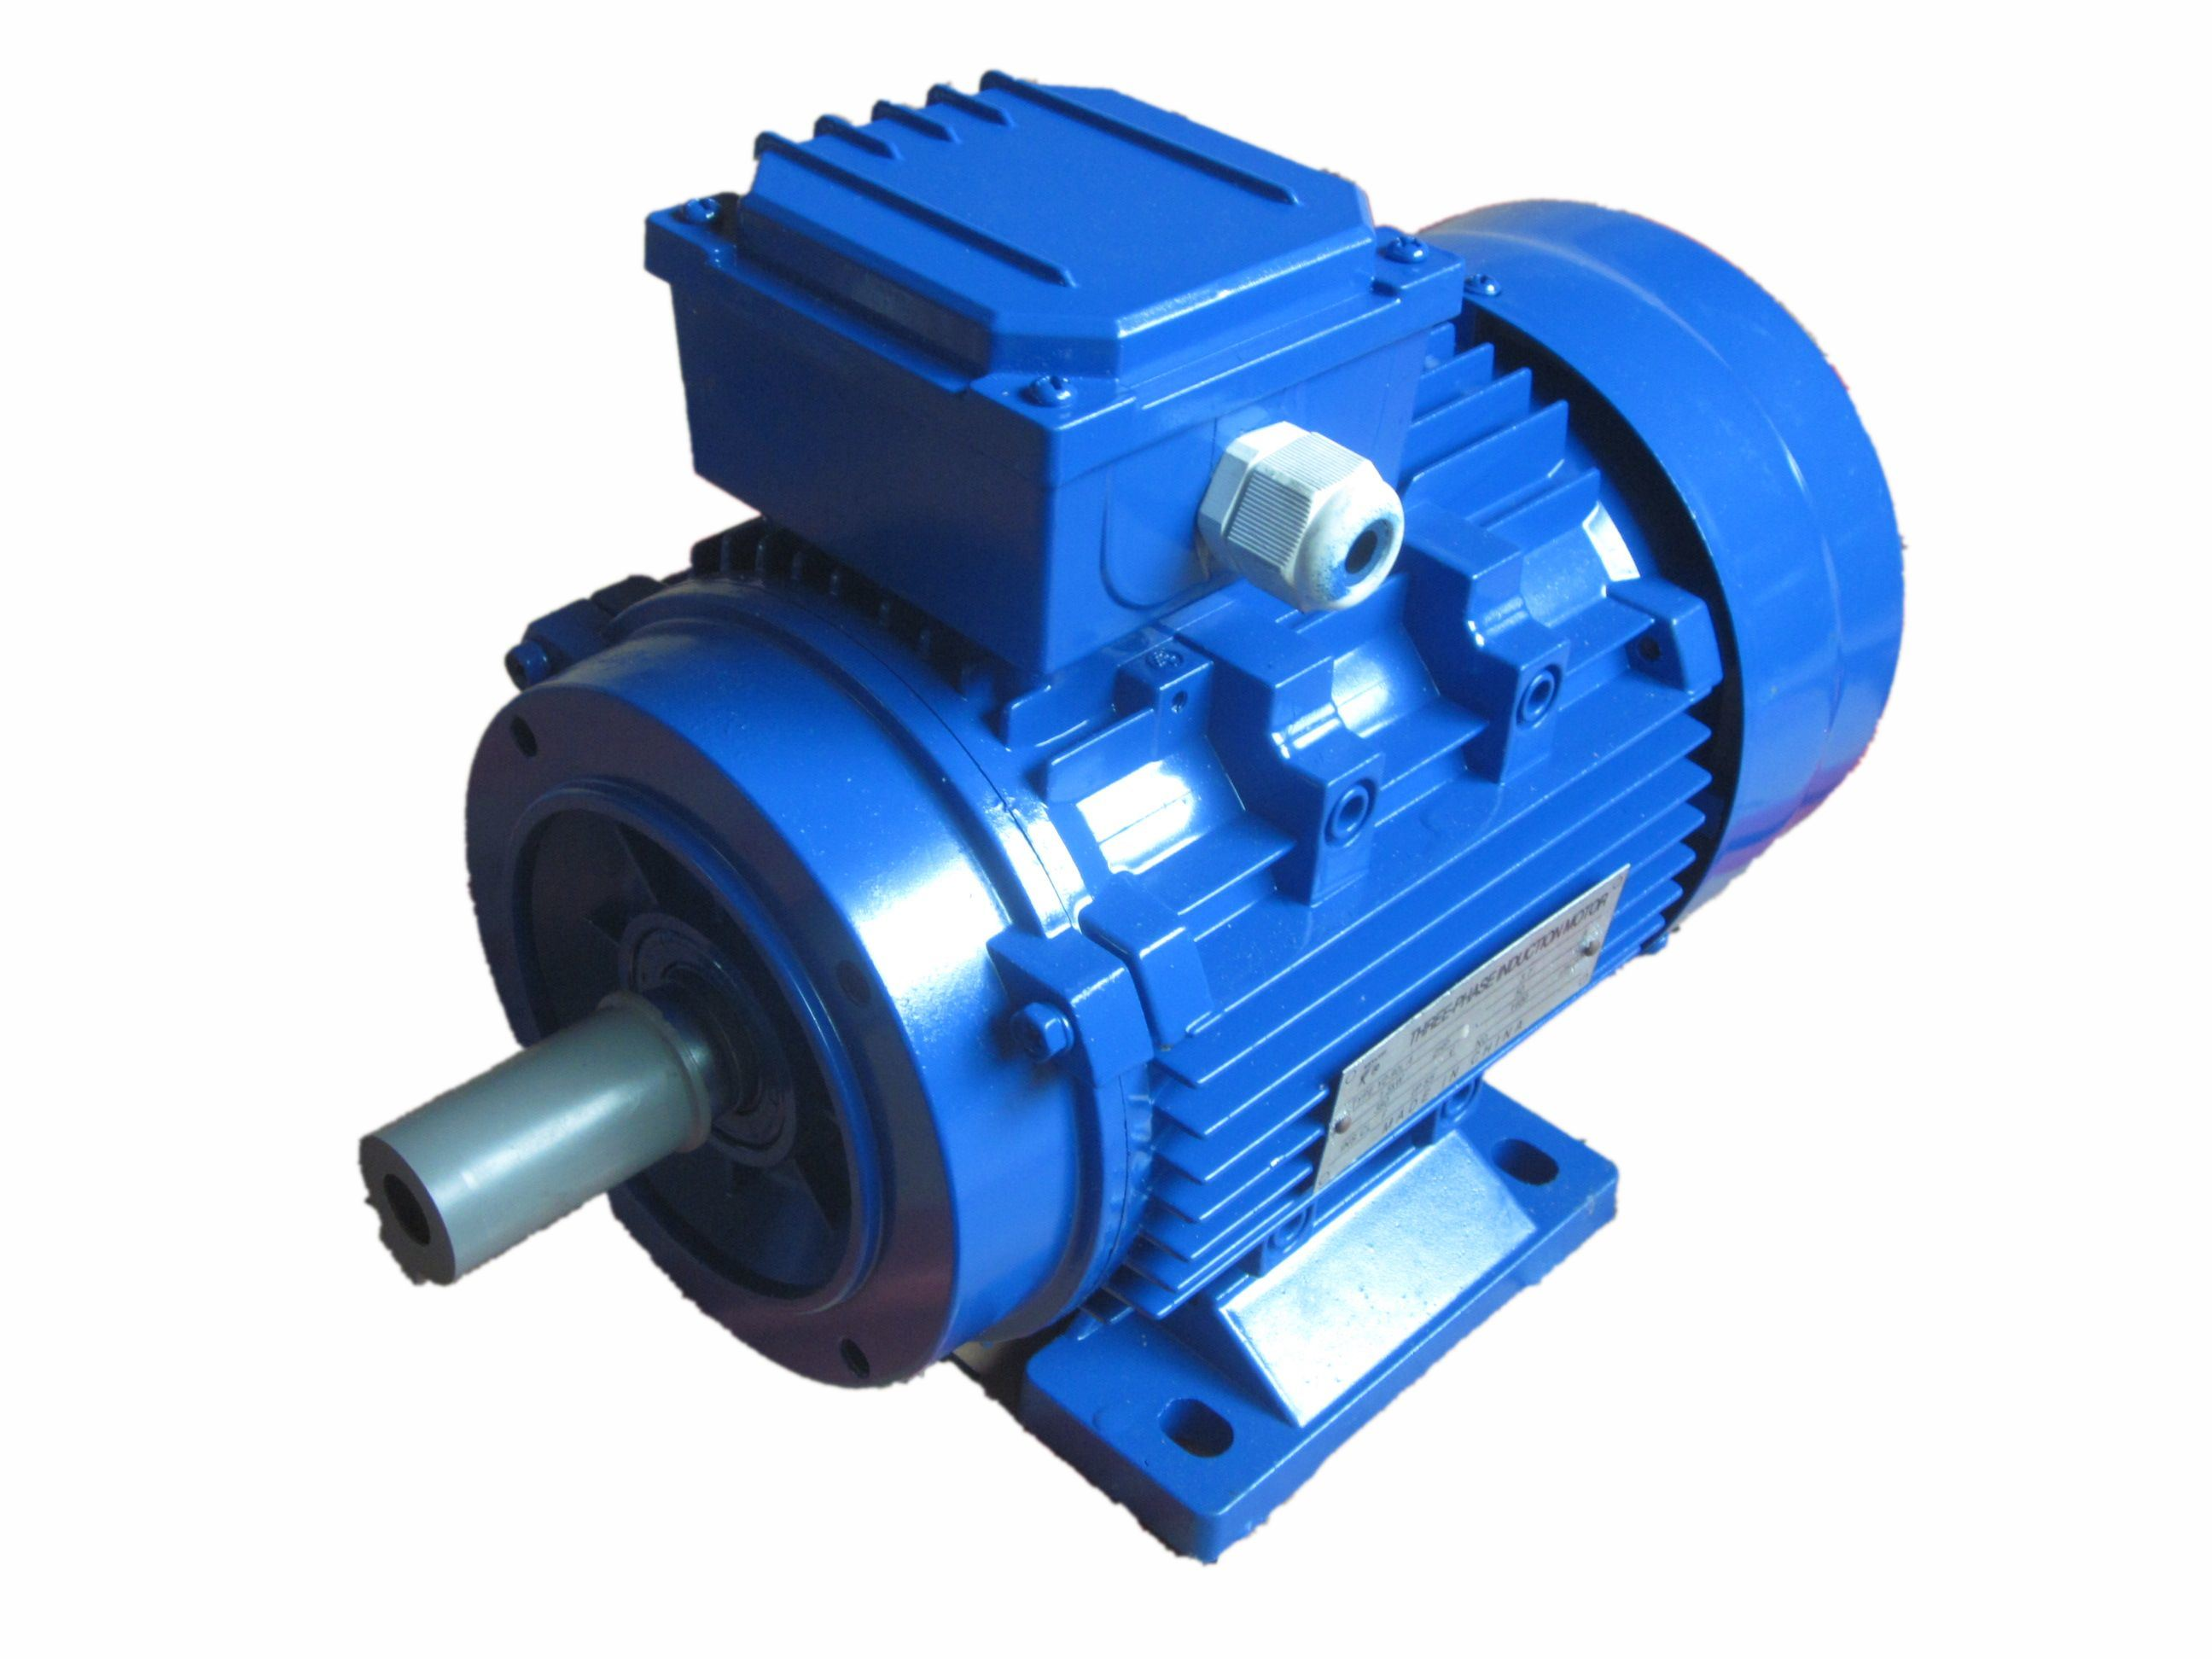 Product 220V 440V Mc Cast Aluminium Electric Motor hehungrry likewise Part Winding Startersoverload Protection additionally Watch together with Groschopp 7341145 120 watt gear motor repair as well Bearing Design Electric Motors. on electric motor stator